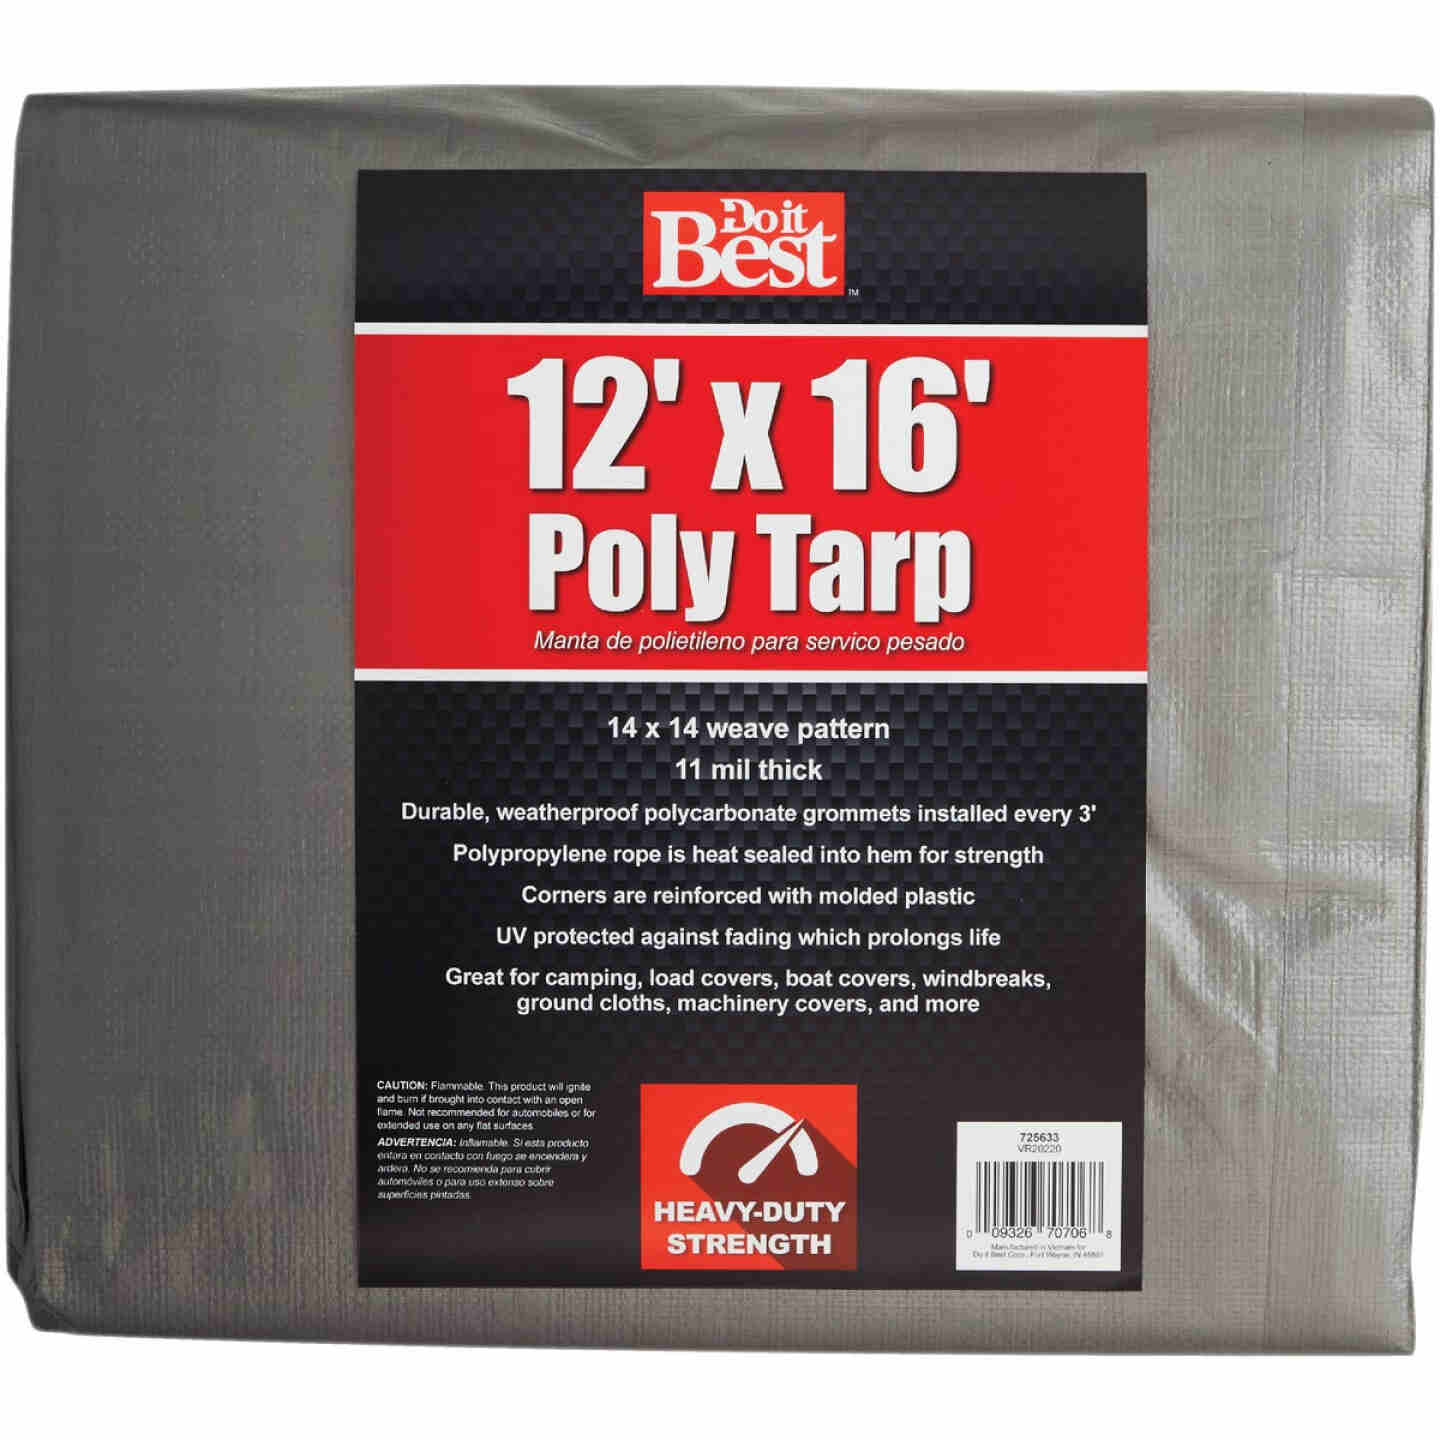 Do it Best Silver Woven 12 Ft. x 16 Ft. Heavy Duty Poly Tarp Image 1